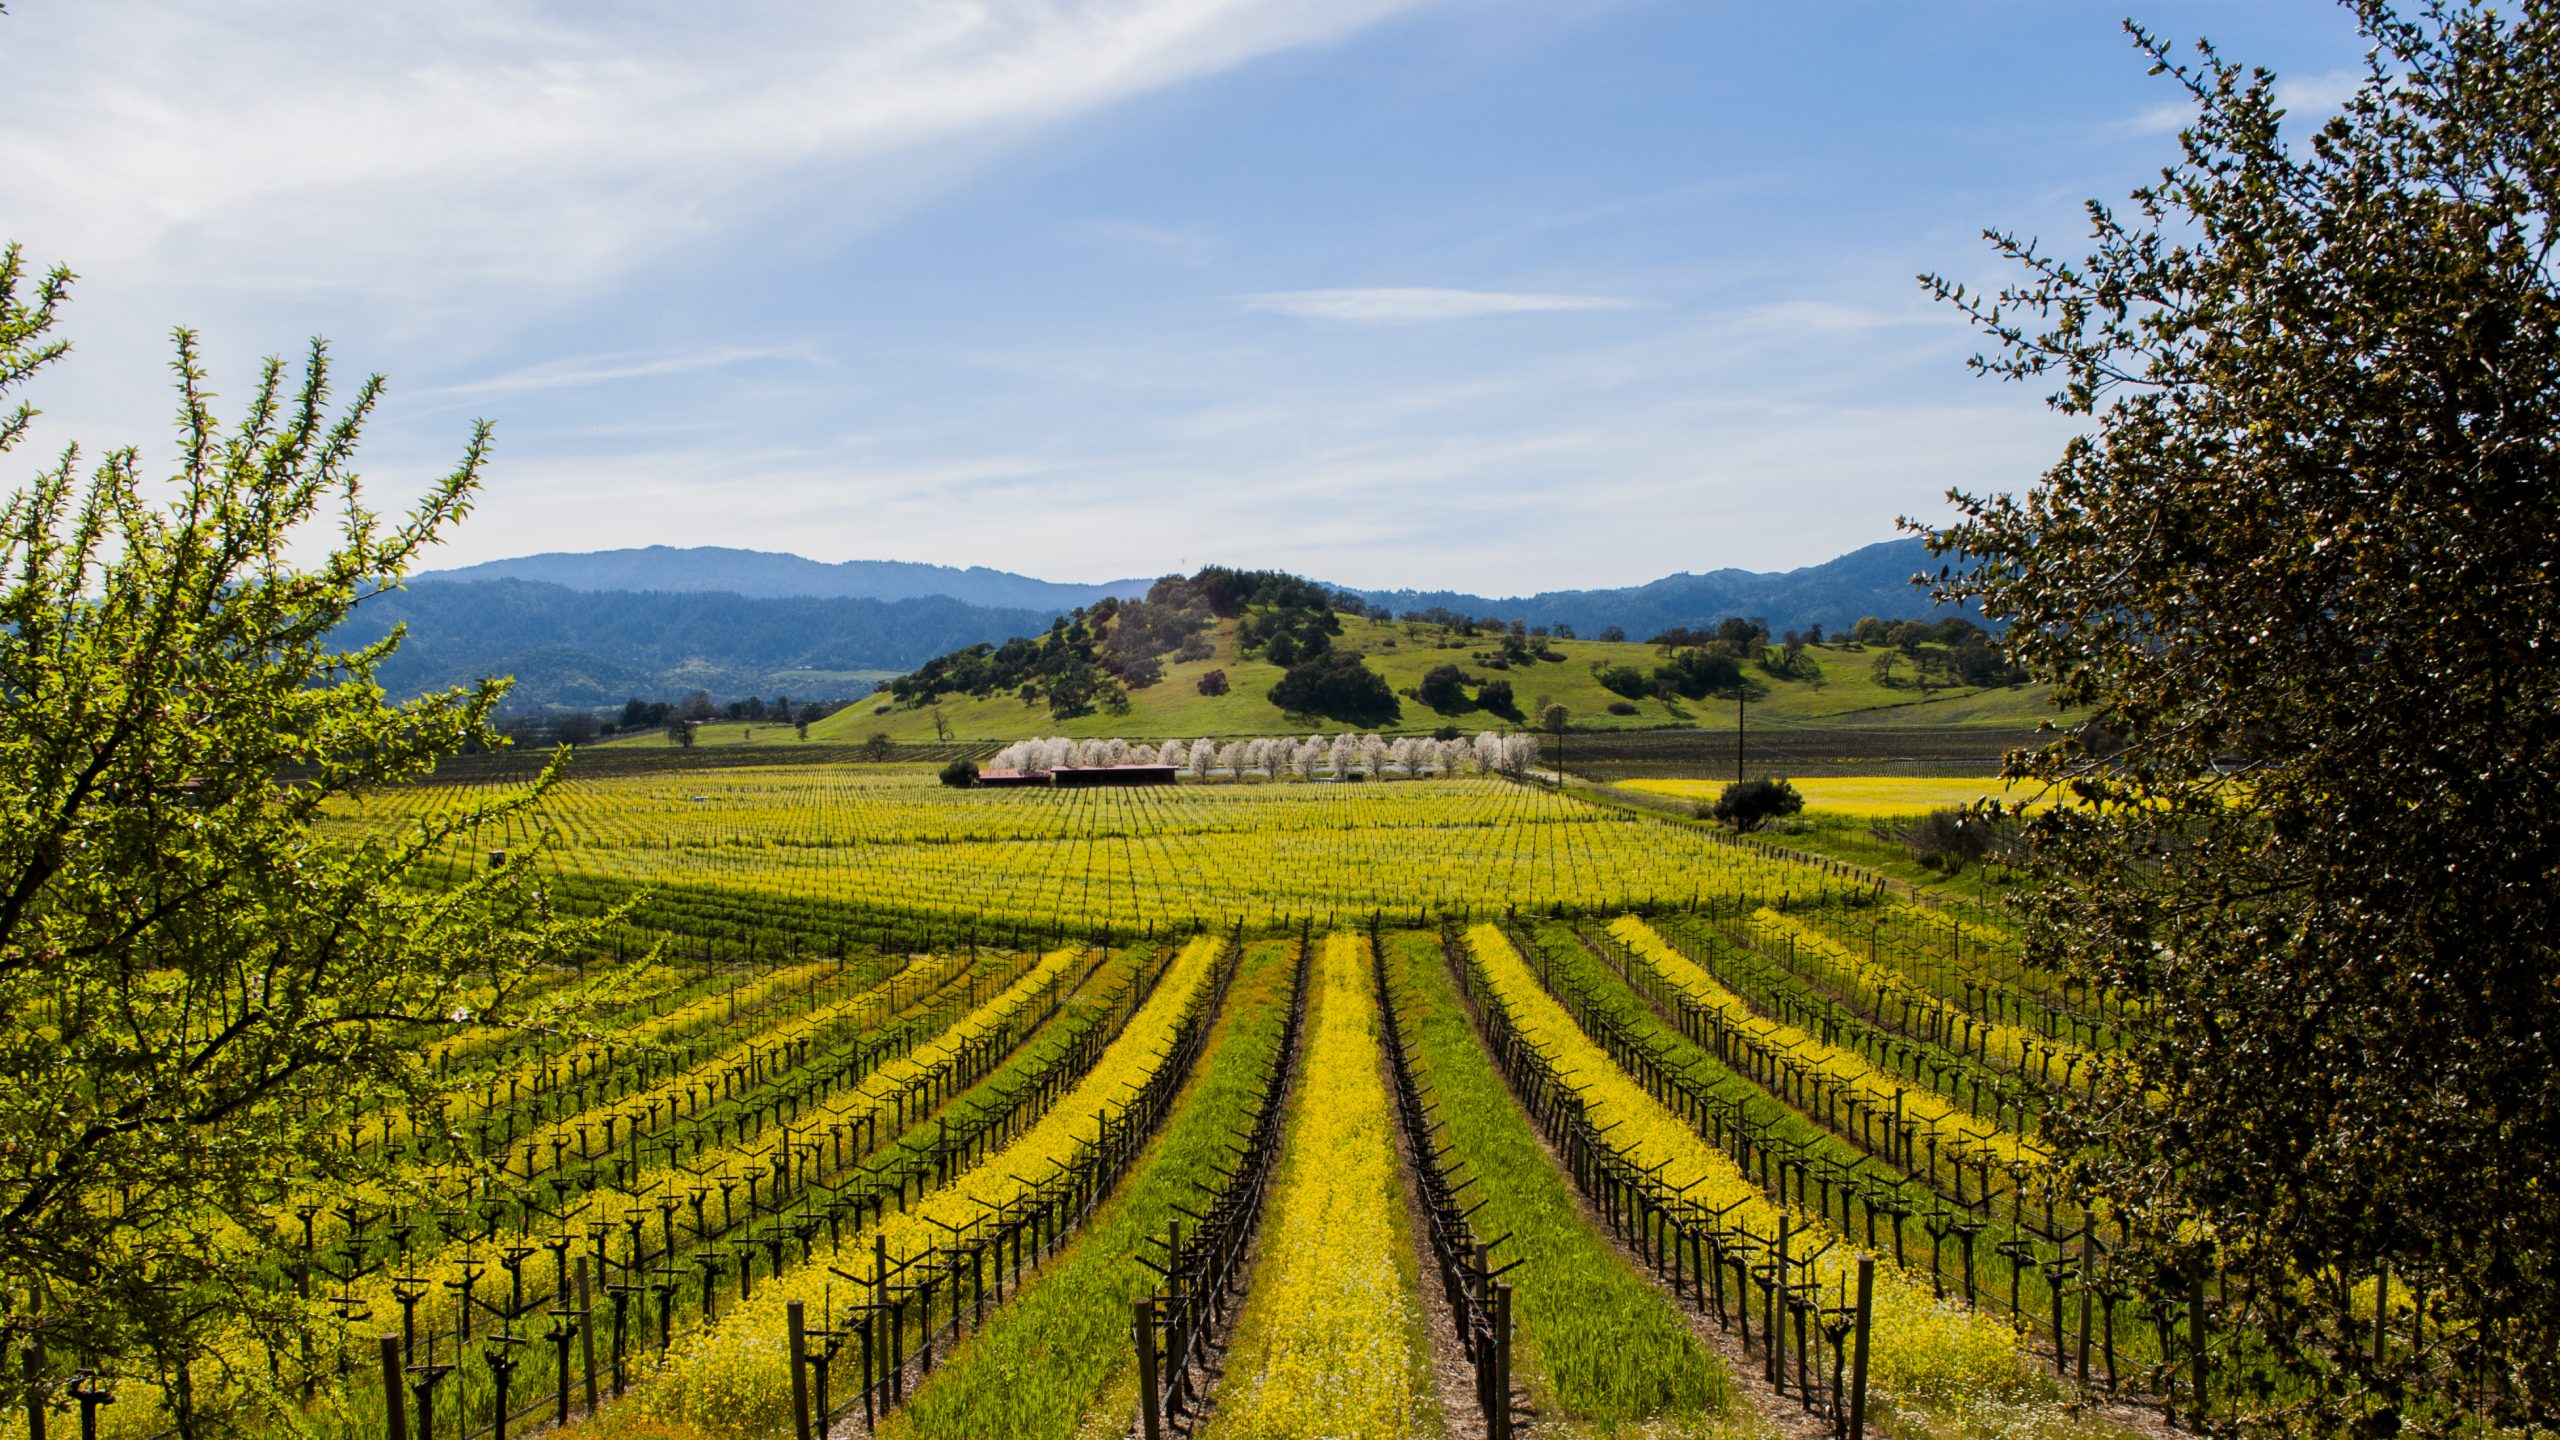 When to Visit Napa Valley? - Napa Valley Tour Guide